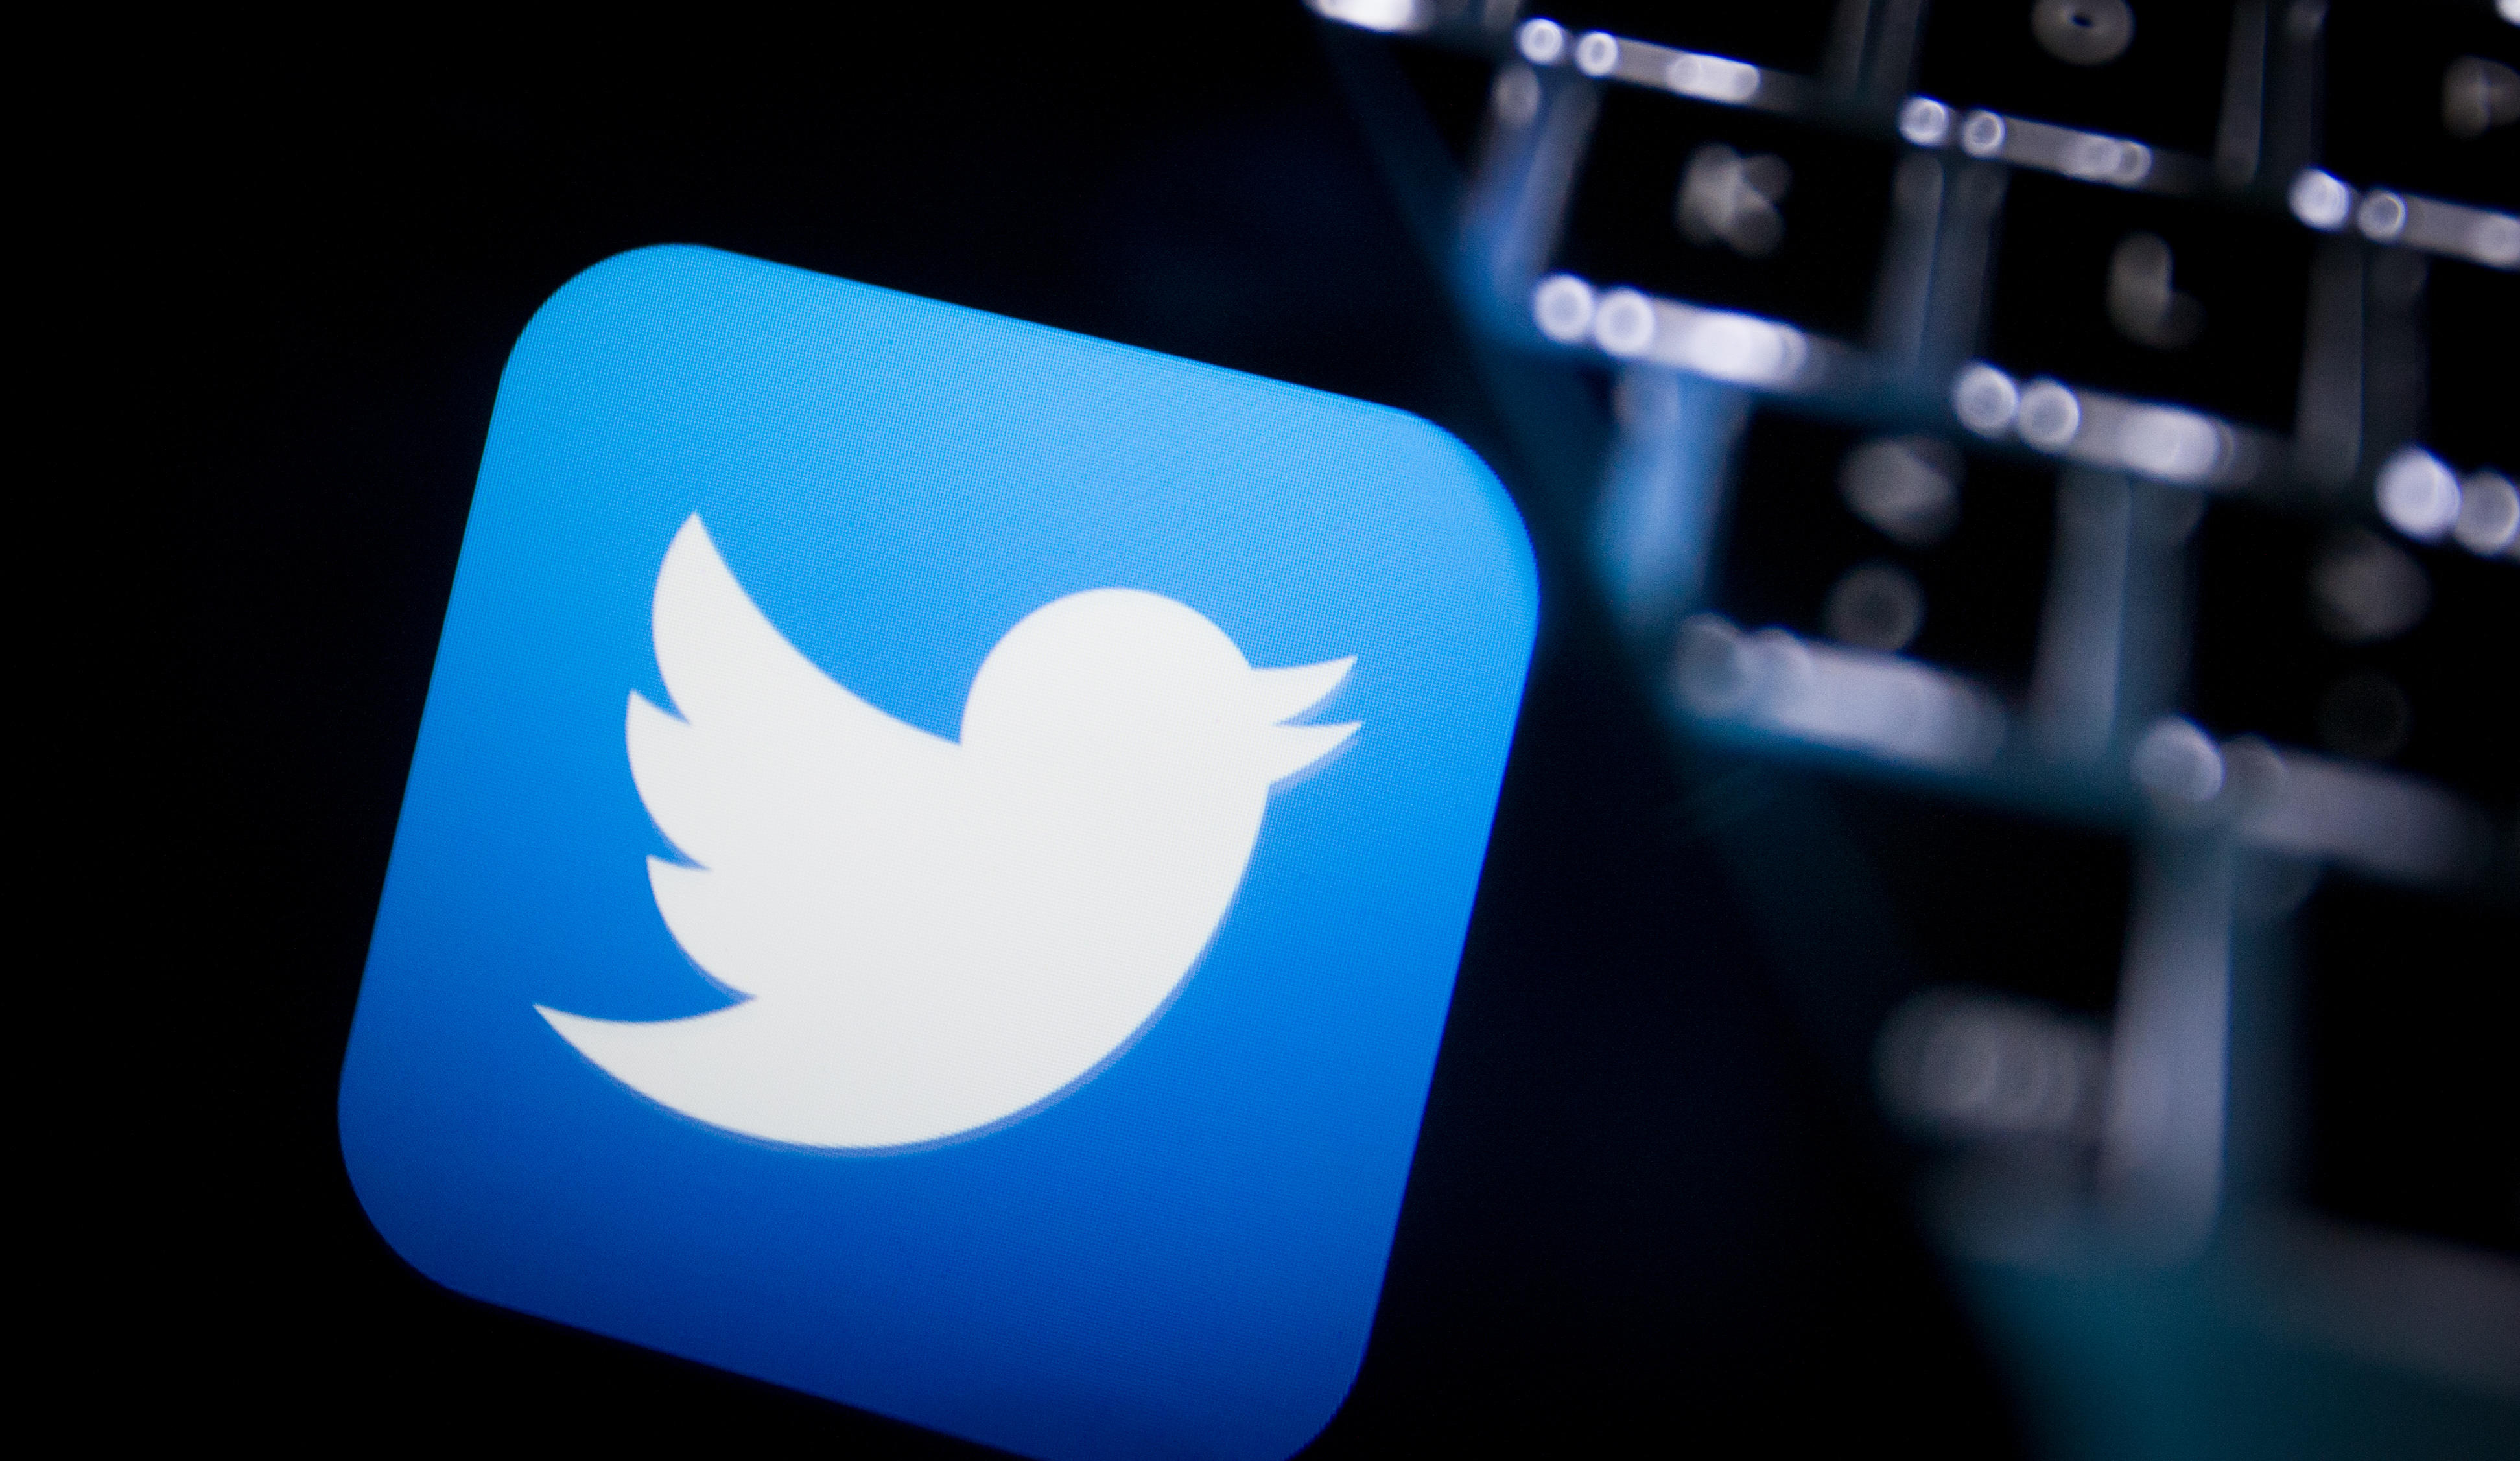 Twitter has announced live streaming